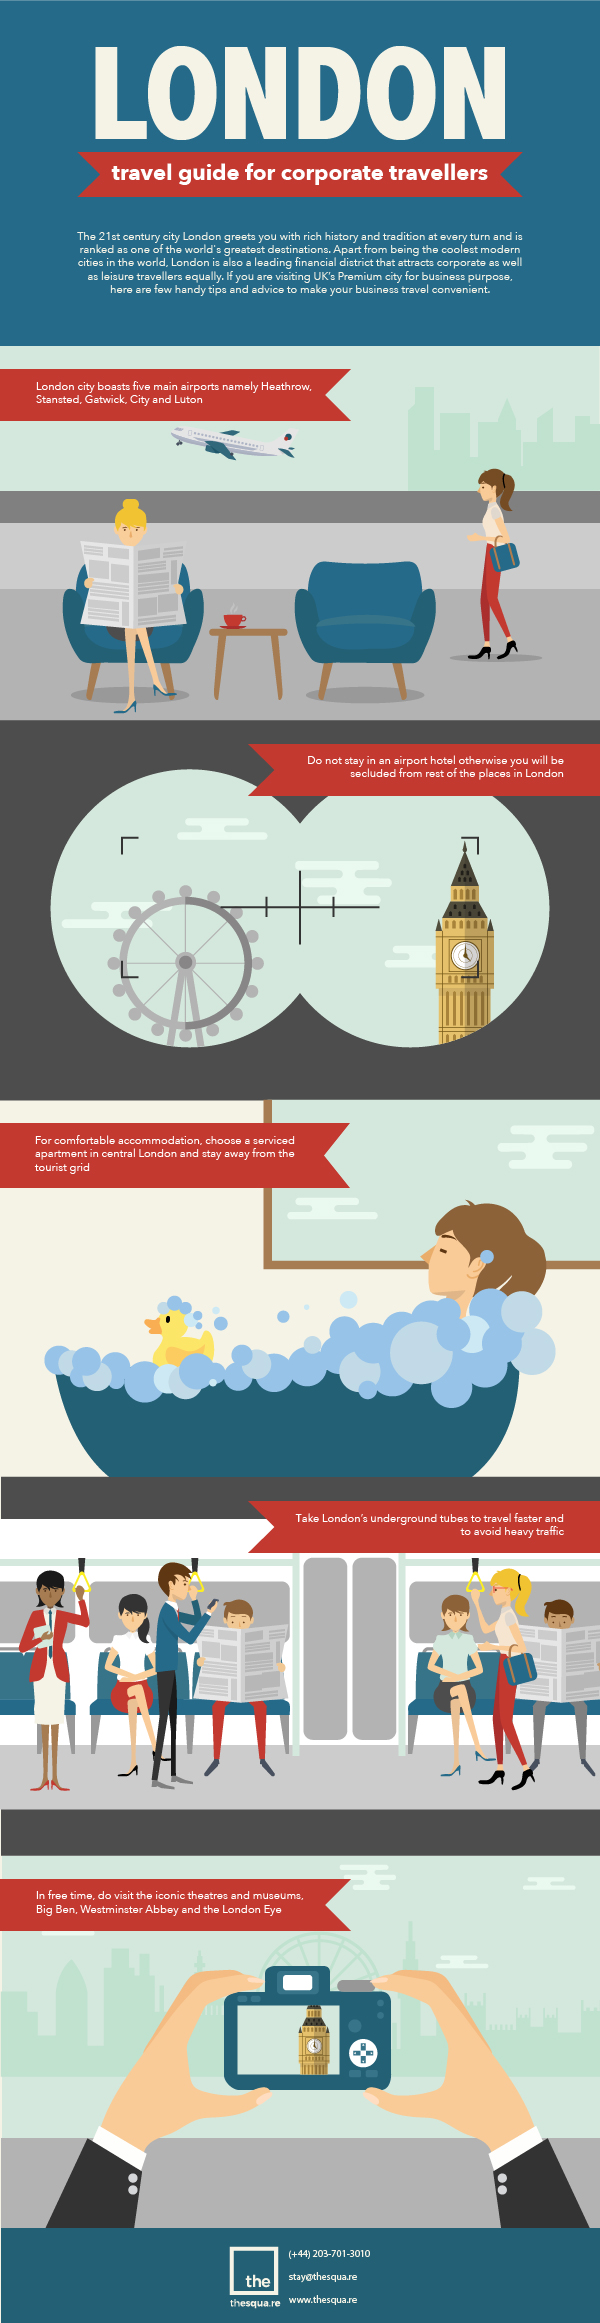 Corporate Traveller and Planning to Visit London [Infographic]